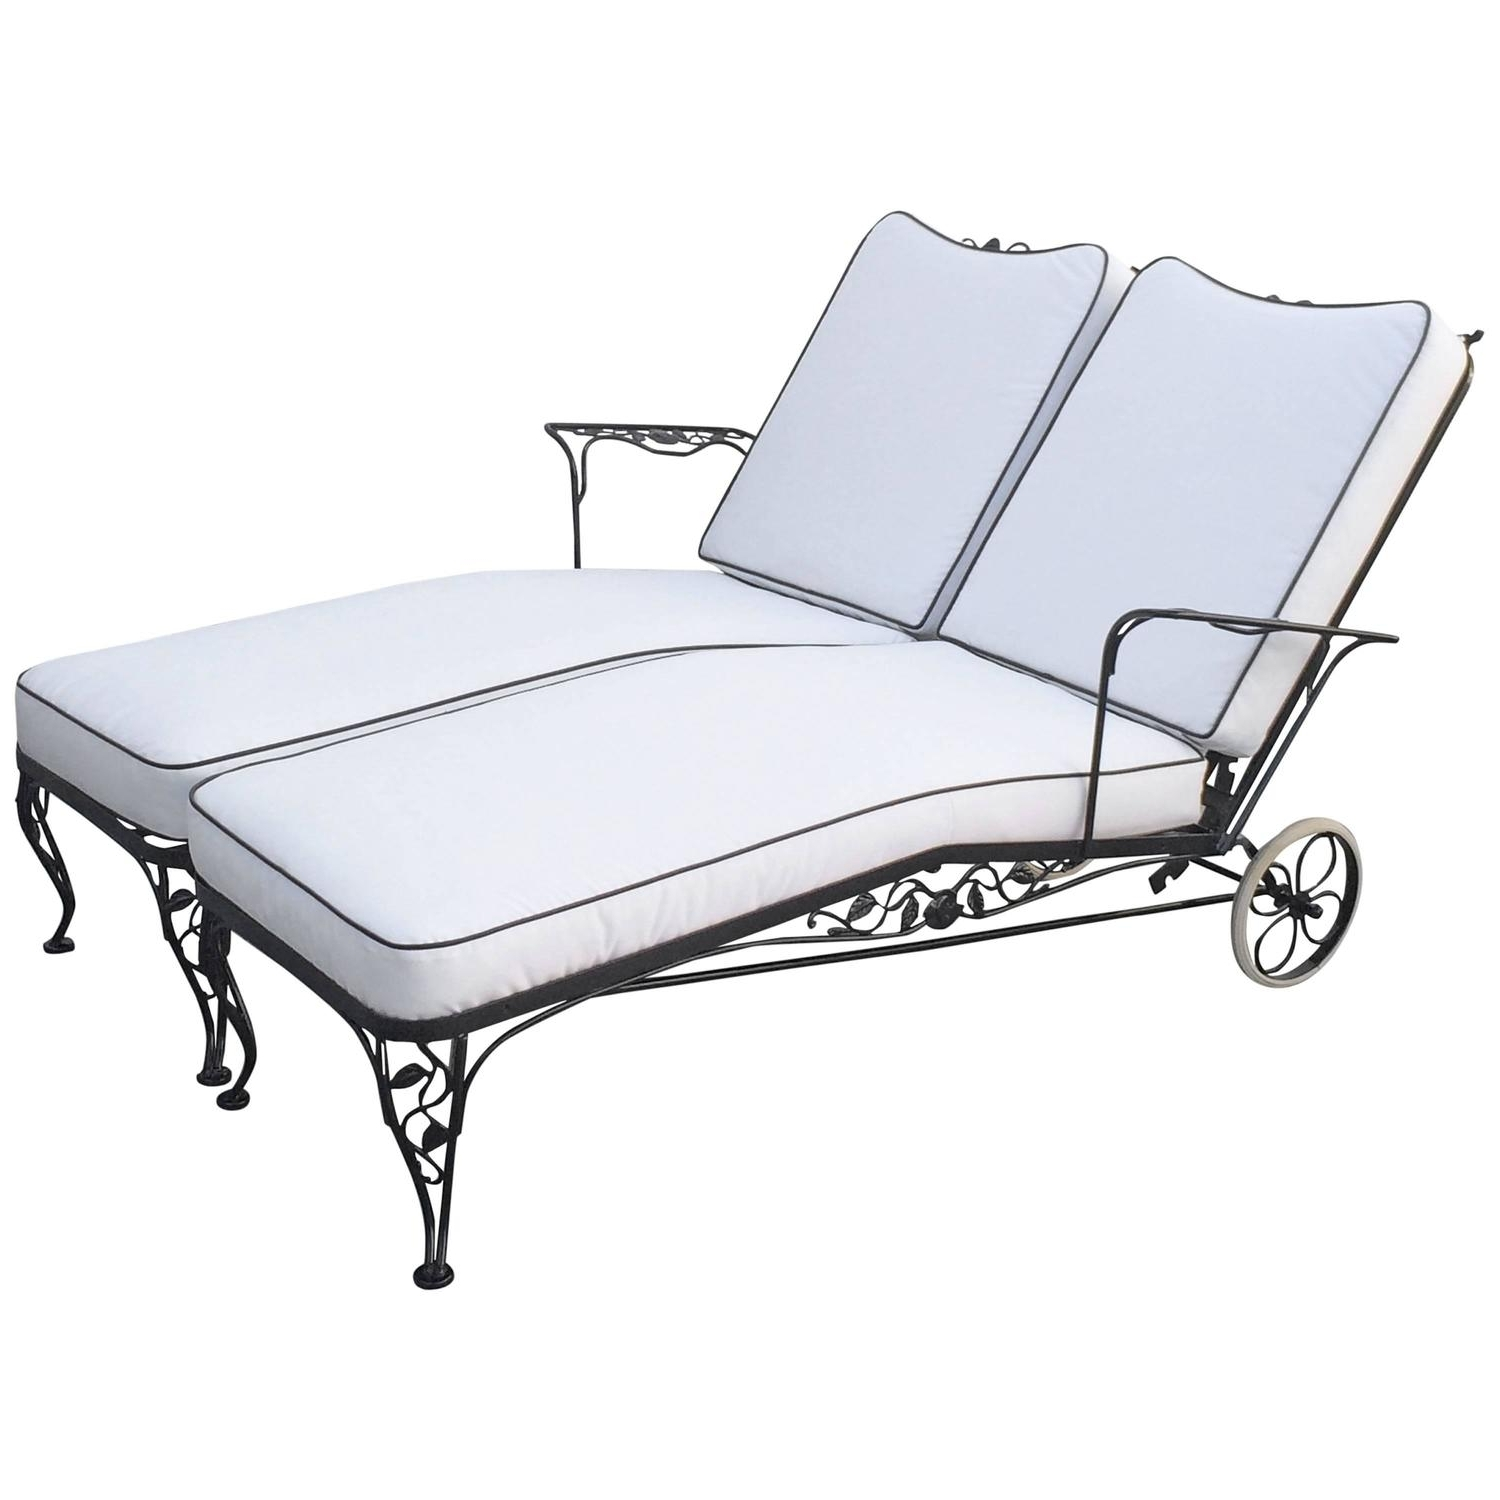 Trendy How Sturdy The Awesome Designs Wrought Iron Chaise Lounge With Wrought Iron Chaise Lounges (View 12 of 15)